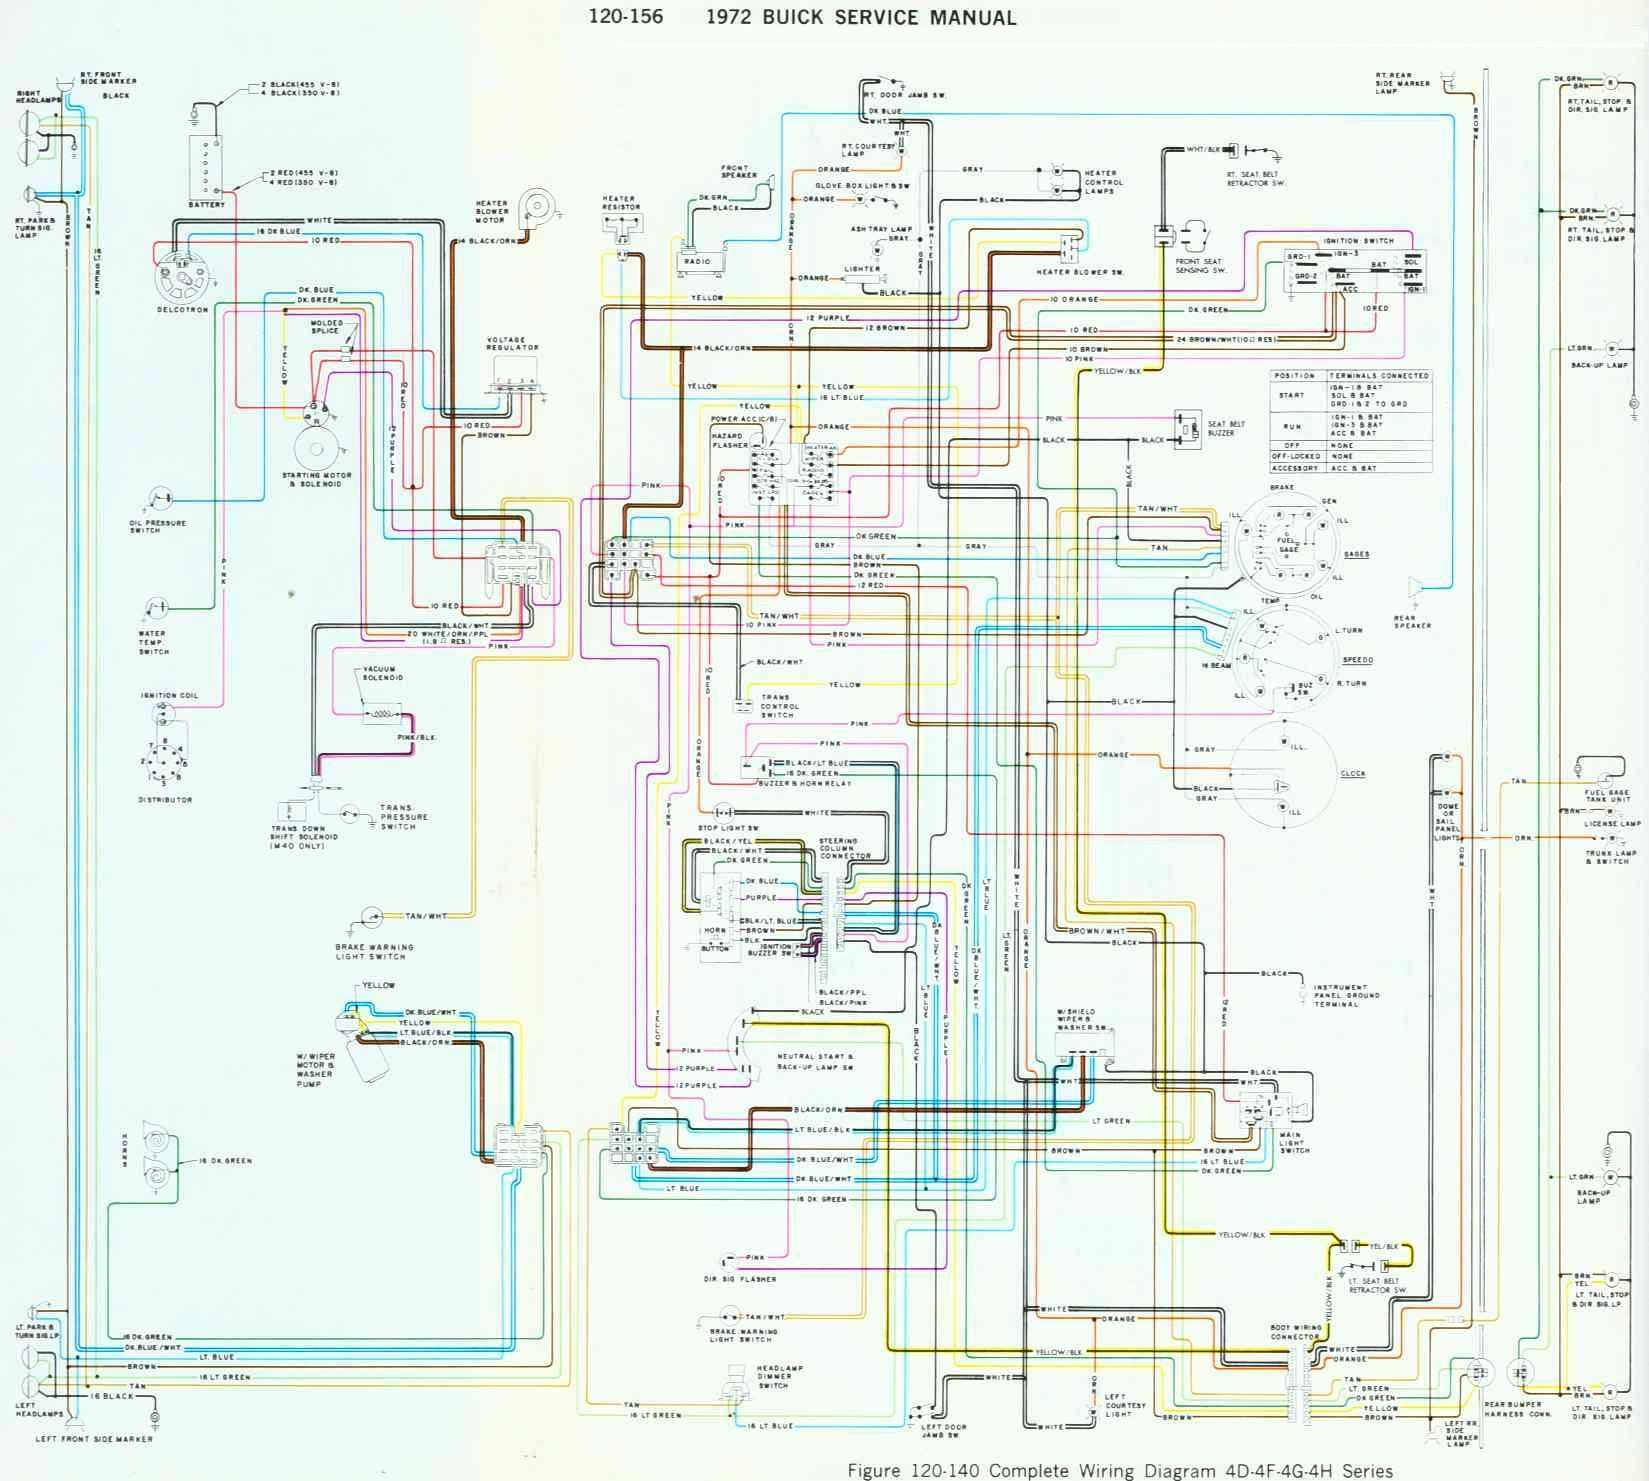 hight resolution of 96 buick ac wiring diagram schematic wiring diagrams u2022 1975 buick 1970 buick ac diagram